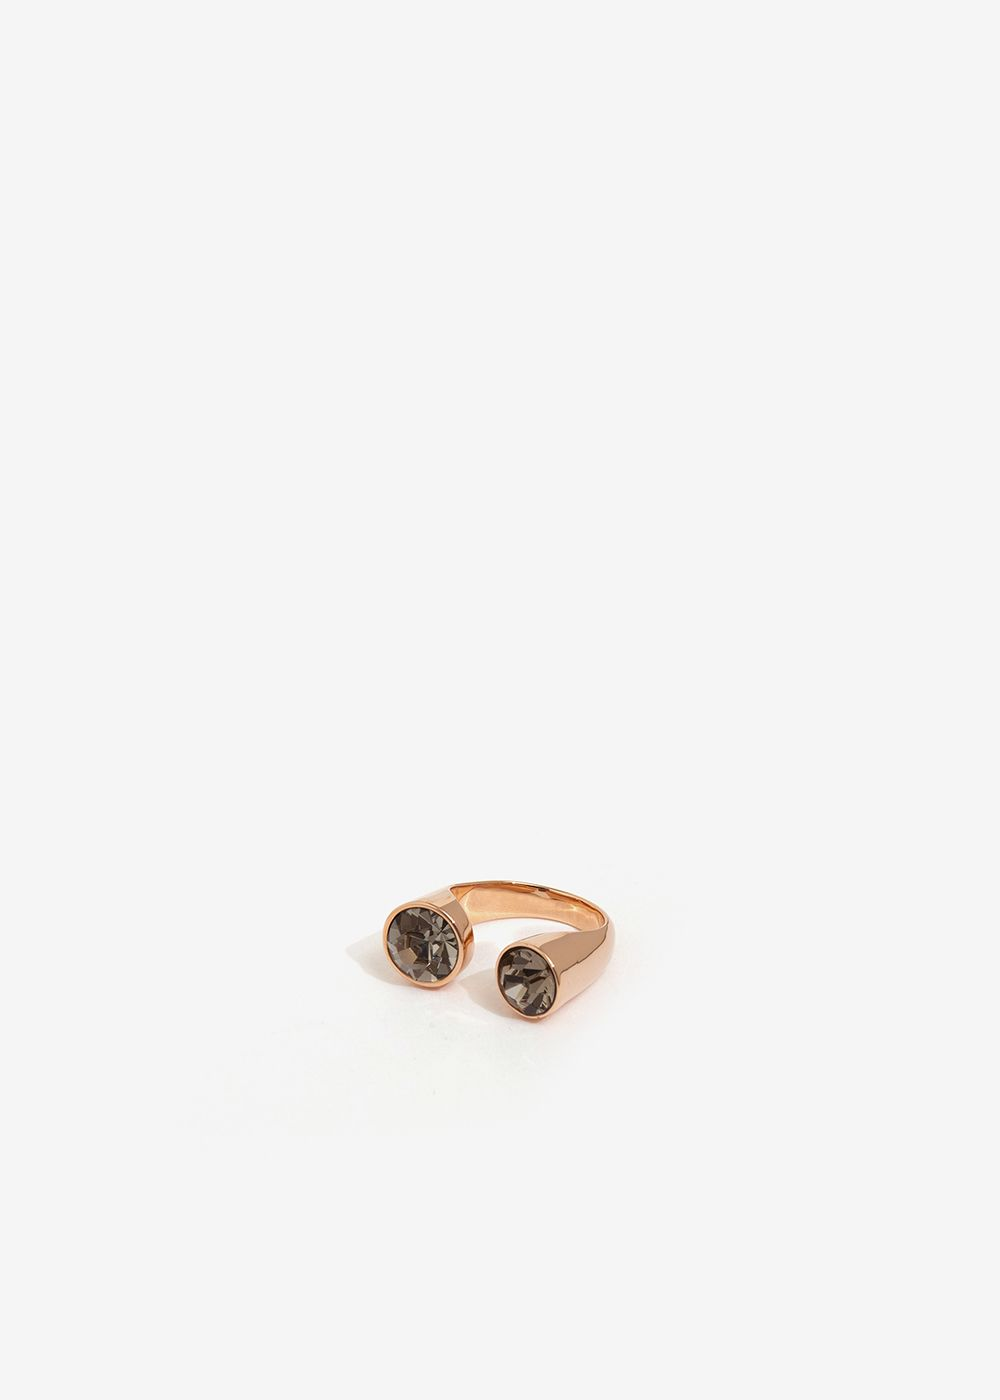 OPEN PINK GOLD RING WITH GRAY CRYSTALS